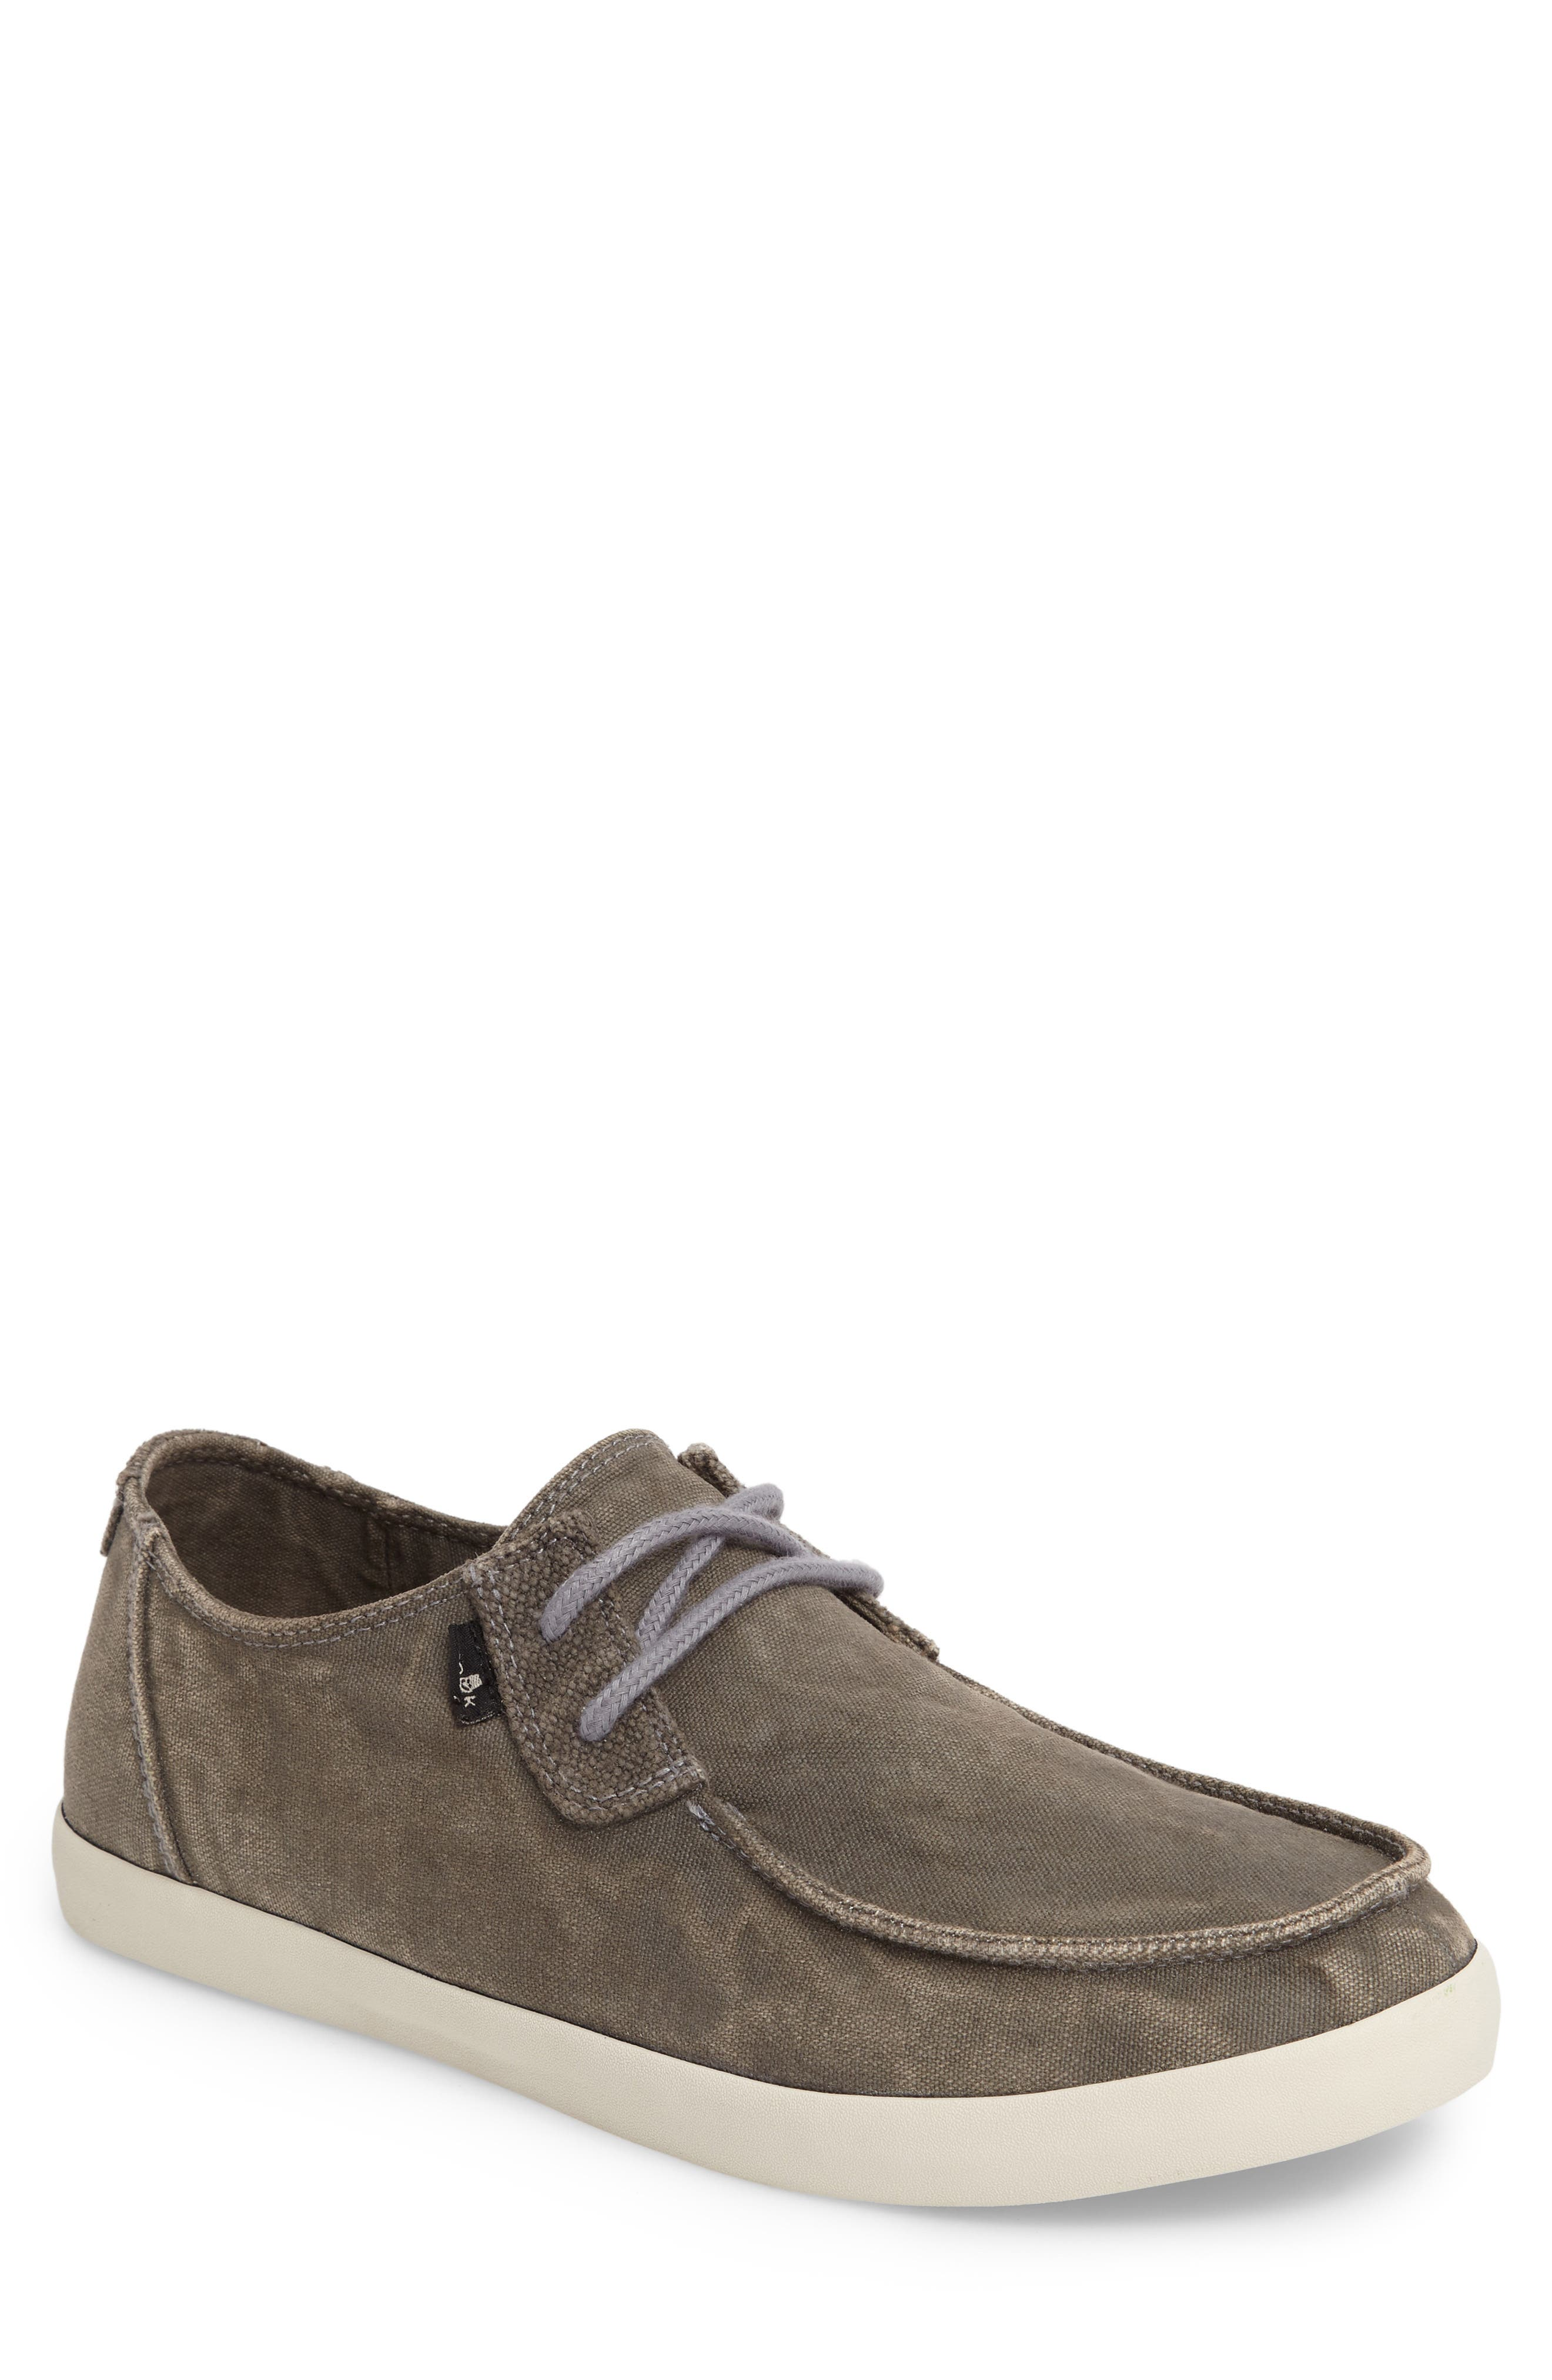 Numami Sneaker,                             Main thumbnail 1, color,                             Washed Grey Canvas